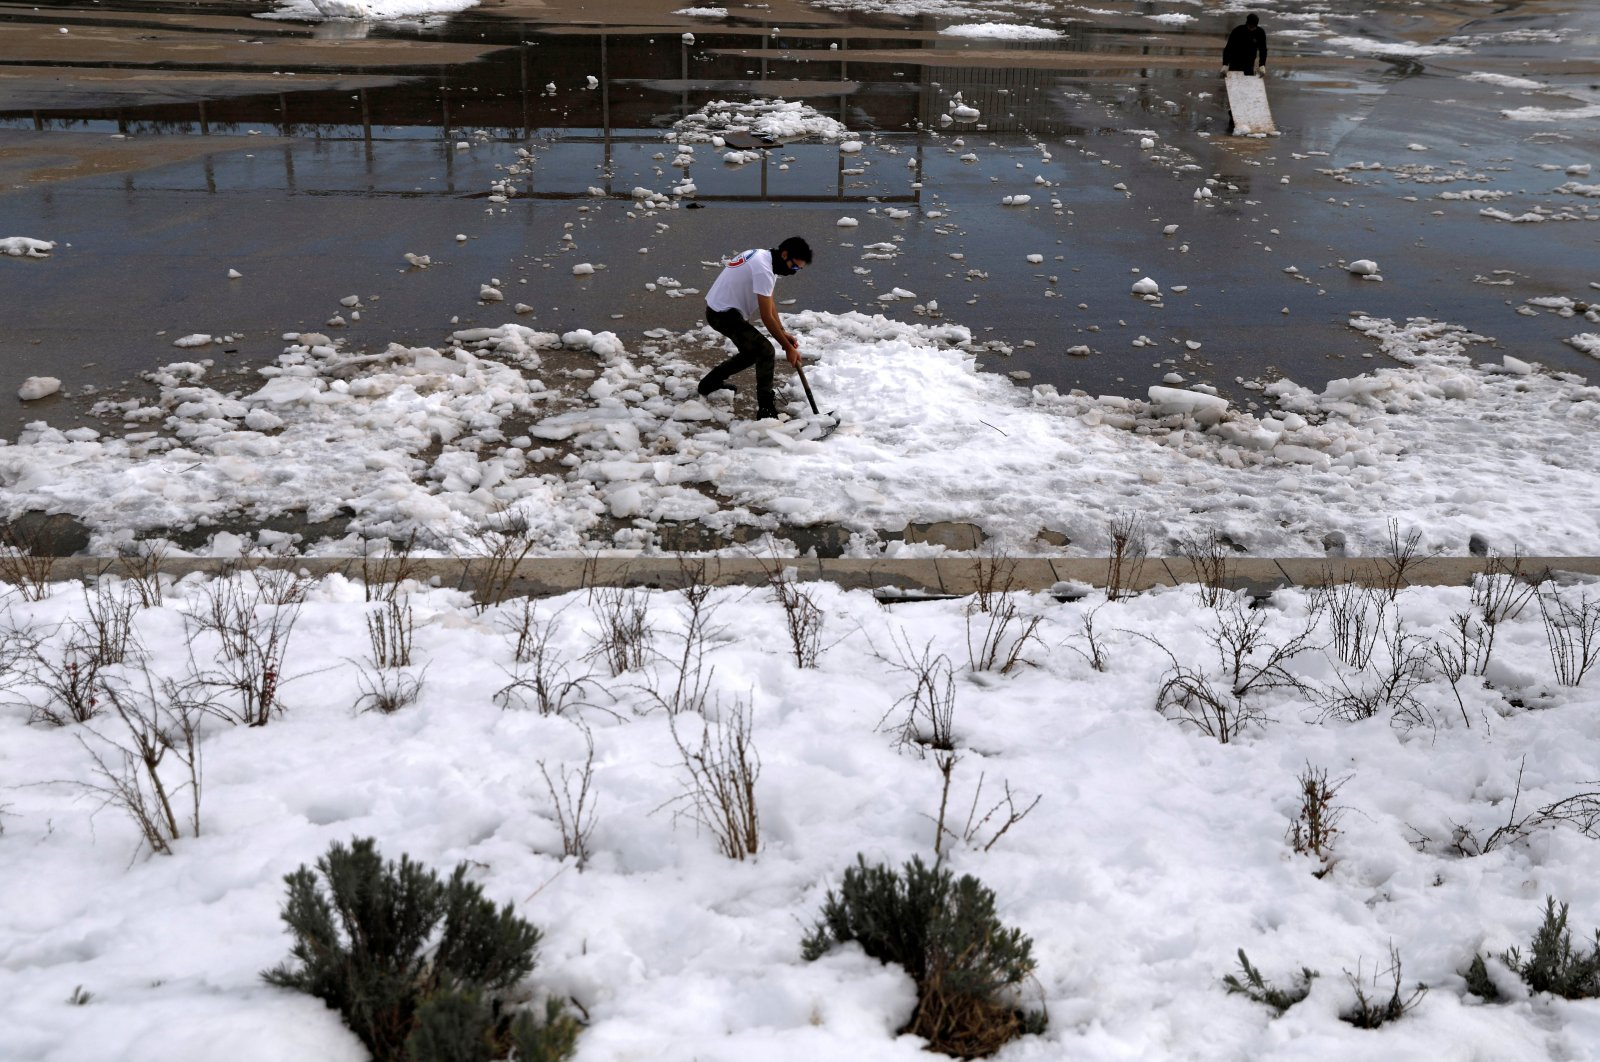 Members of a skating club clear ice and snow from the public area where they train after heavy snowfall in Madrid, Spain on Jan. 15, 2021. (Reuters Photo)